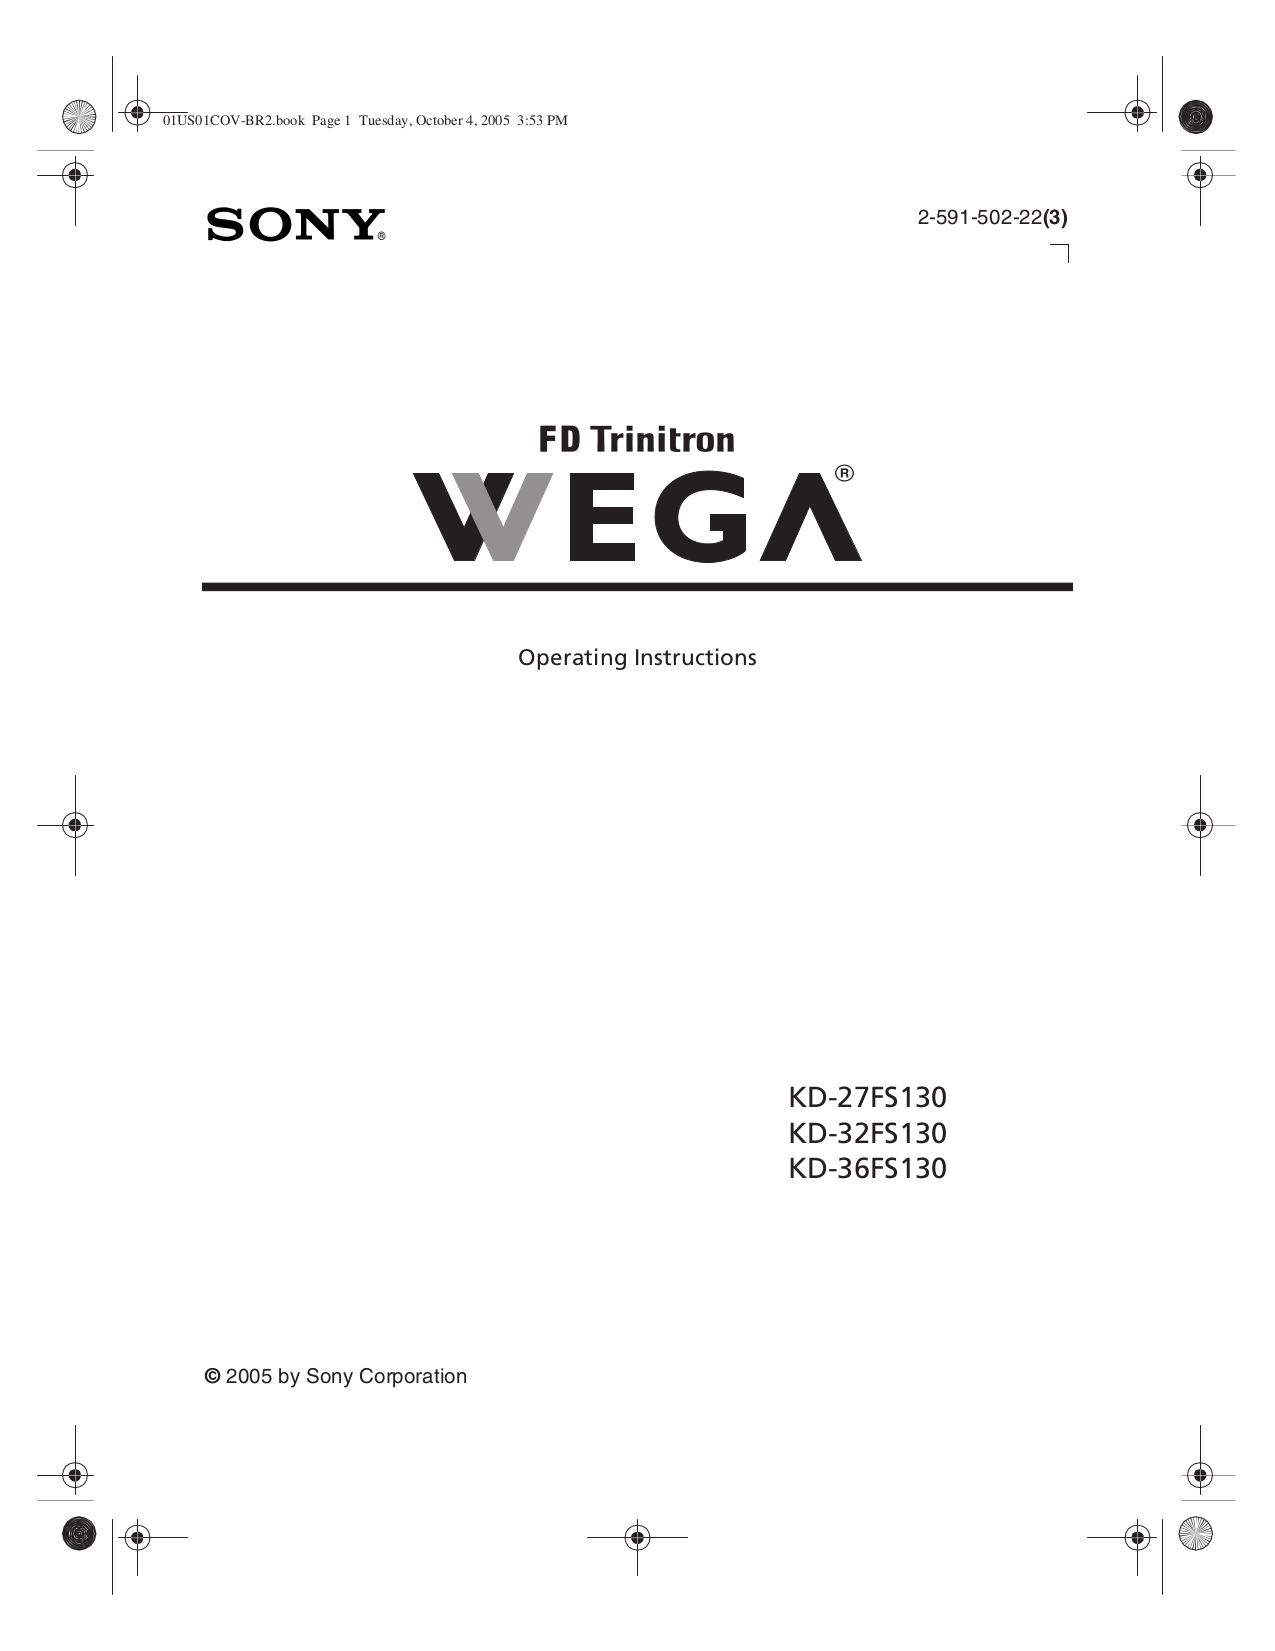 Download free pdf for Sony WEGA KD-36FS130 TV manual